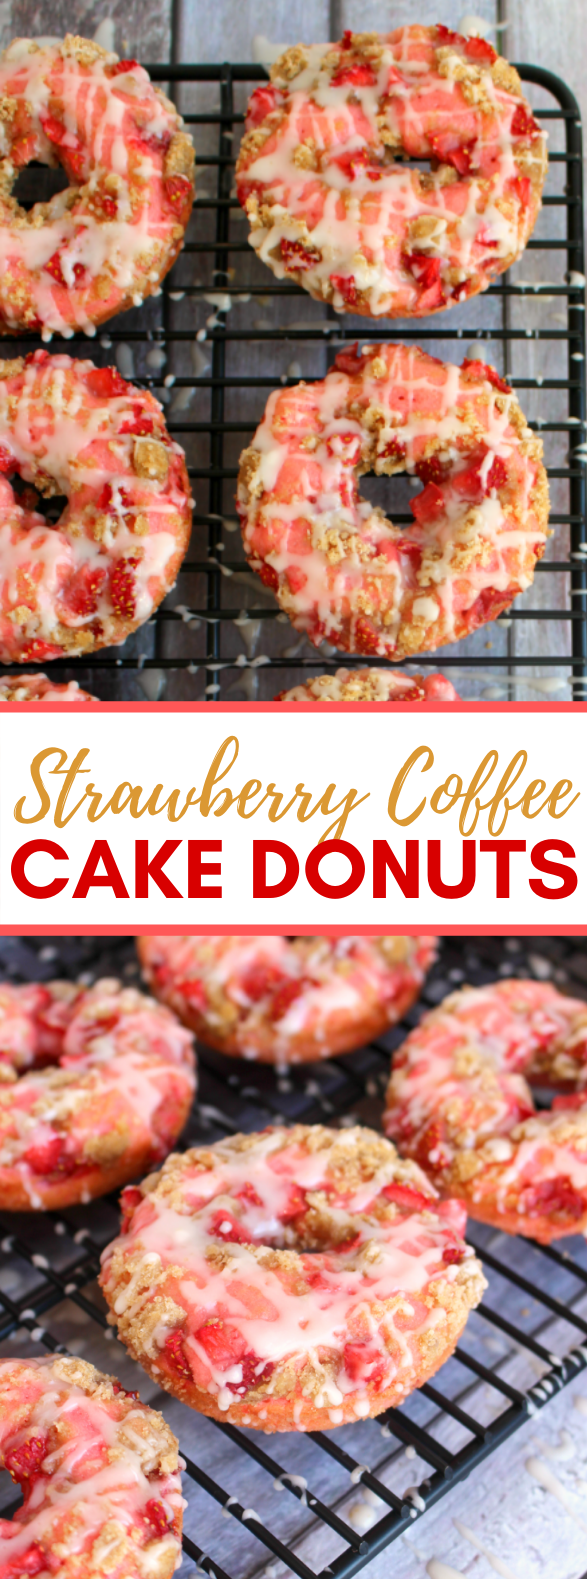 Strawberry Coffee Cake Donuts #desserts #sweets